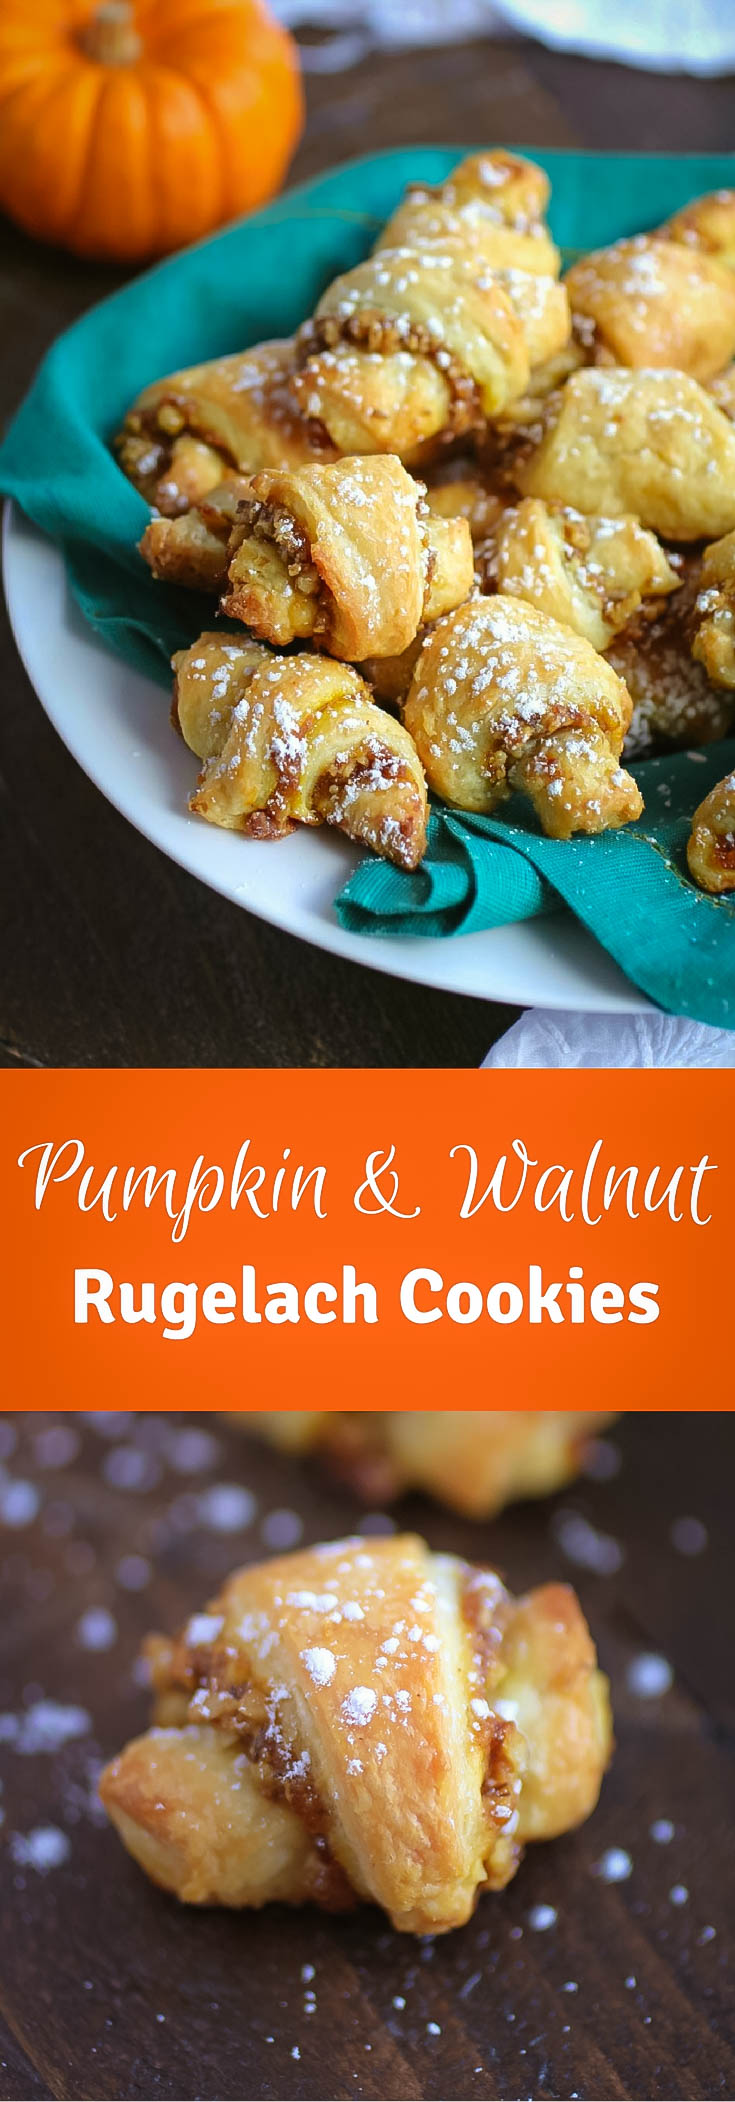 Pumpkin and Walnut Rugelach Cookies are a delight for any celebration! You'll love these Pumpkin and Walnut Rugelach Cookies!